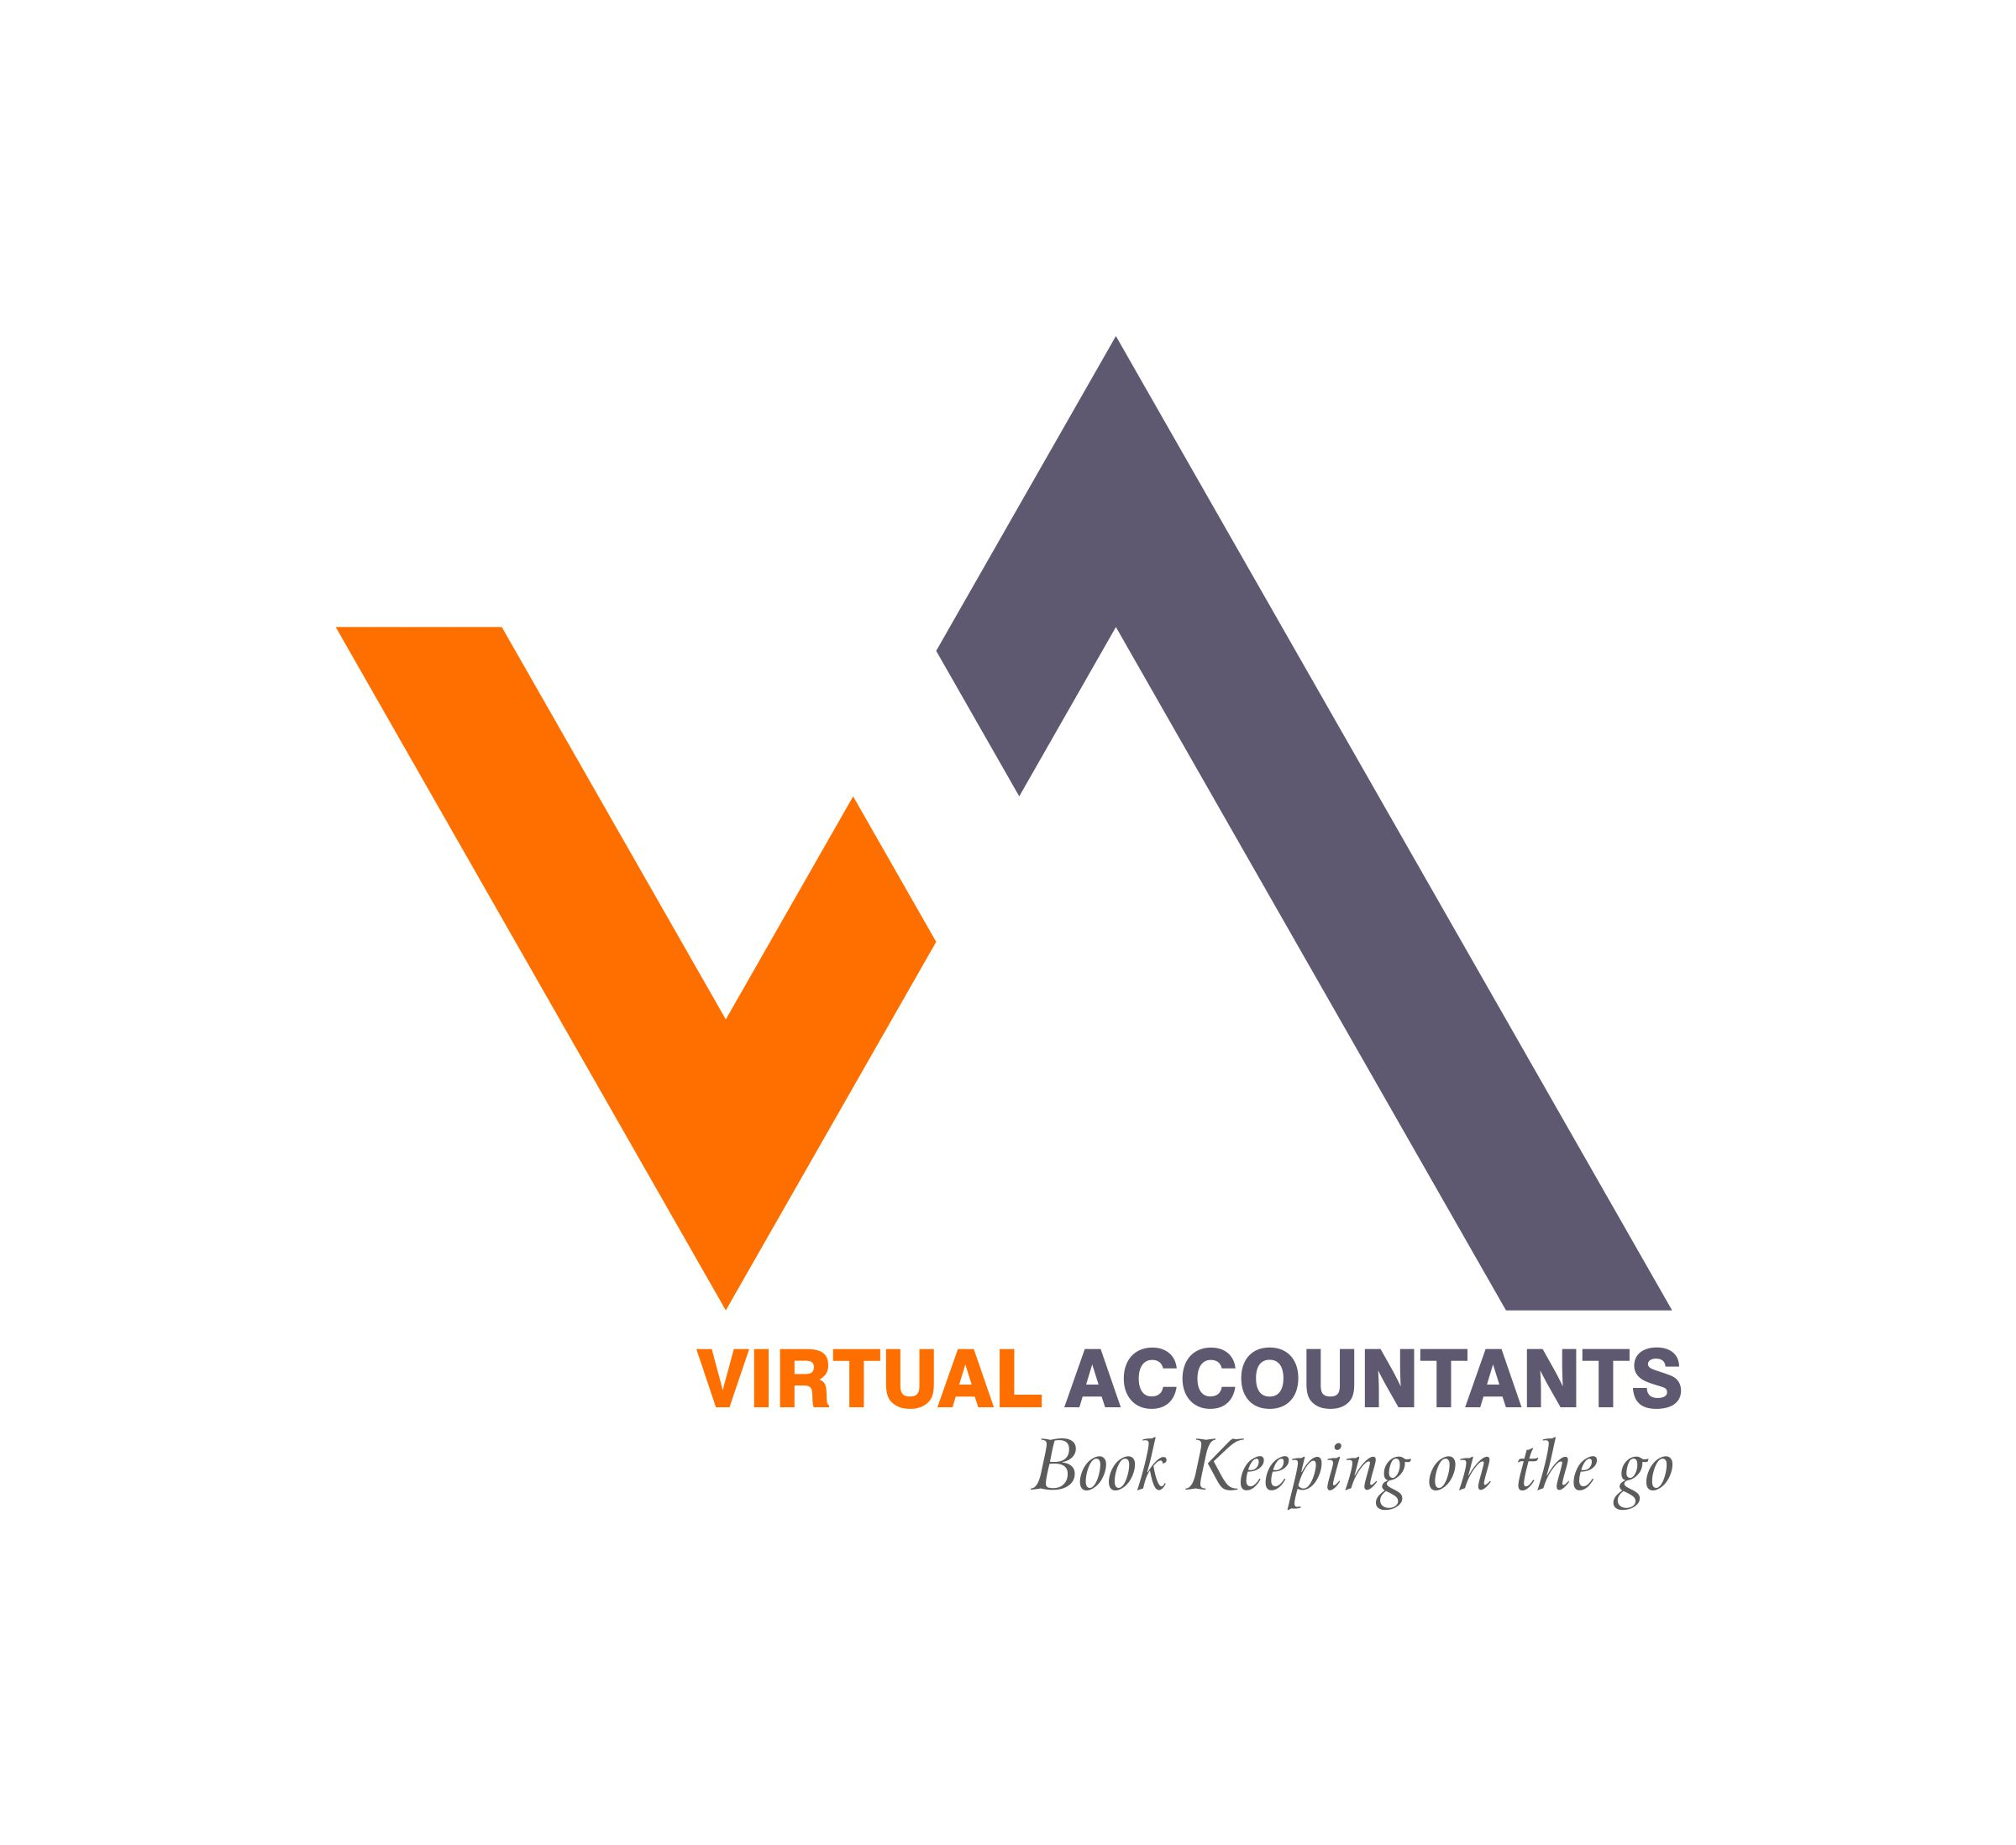 Virtual Accountants